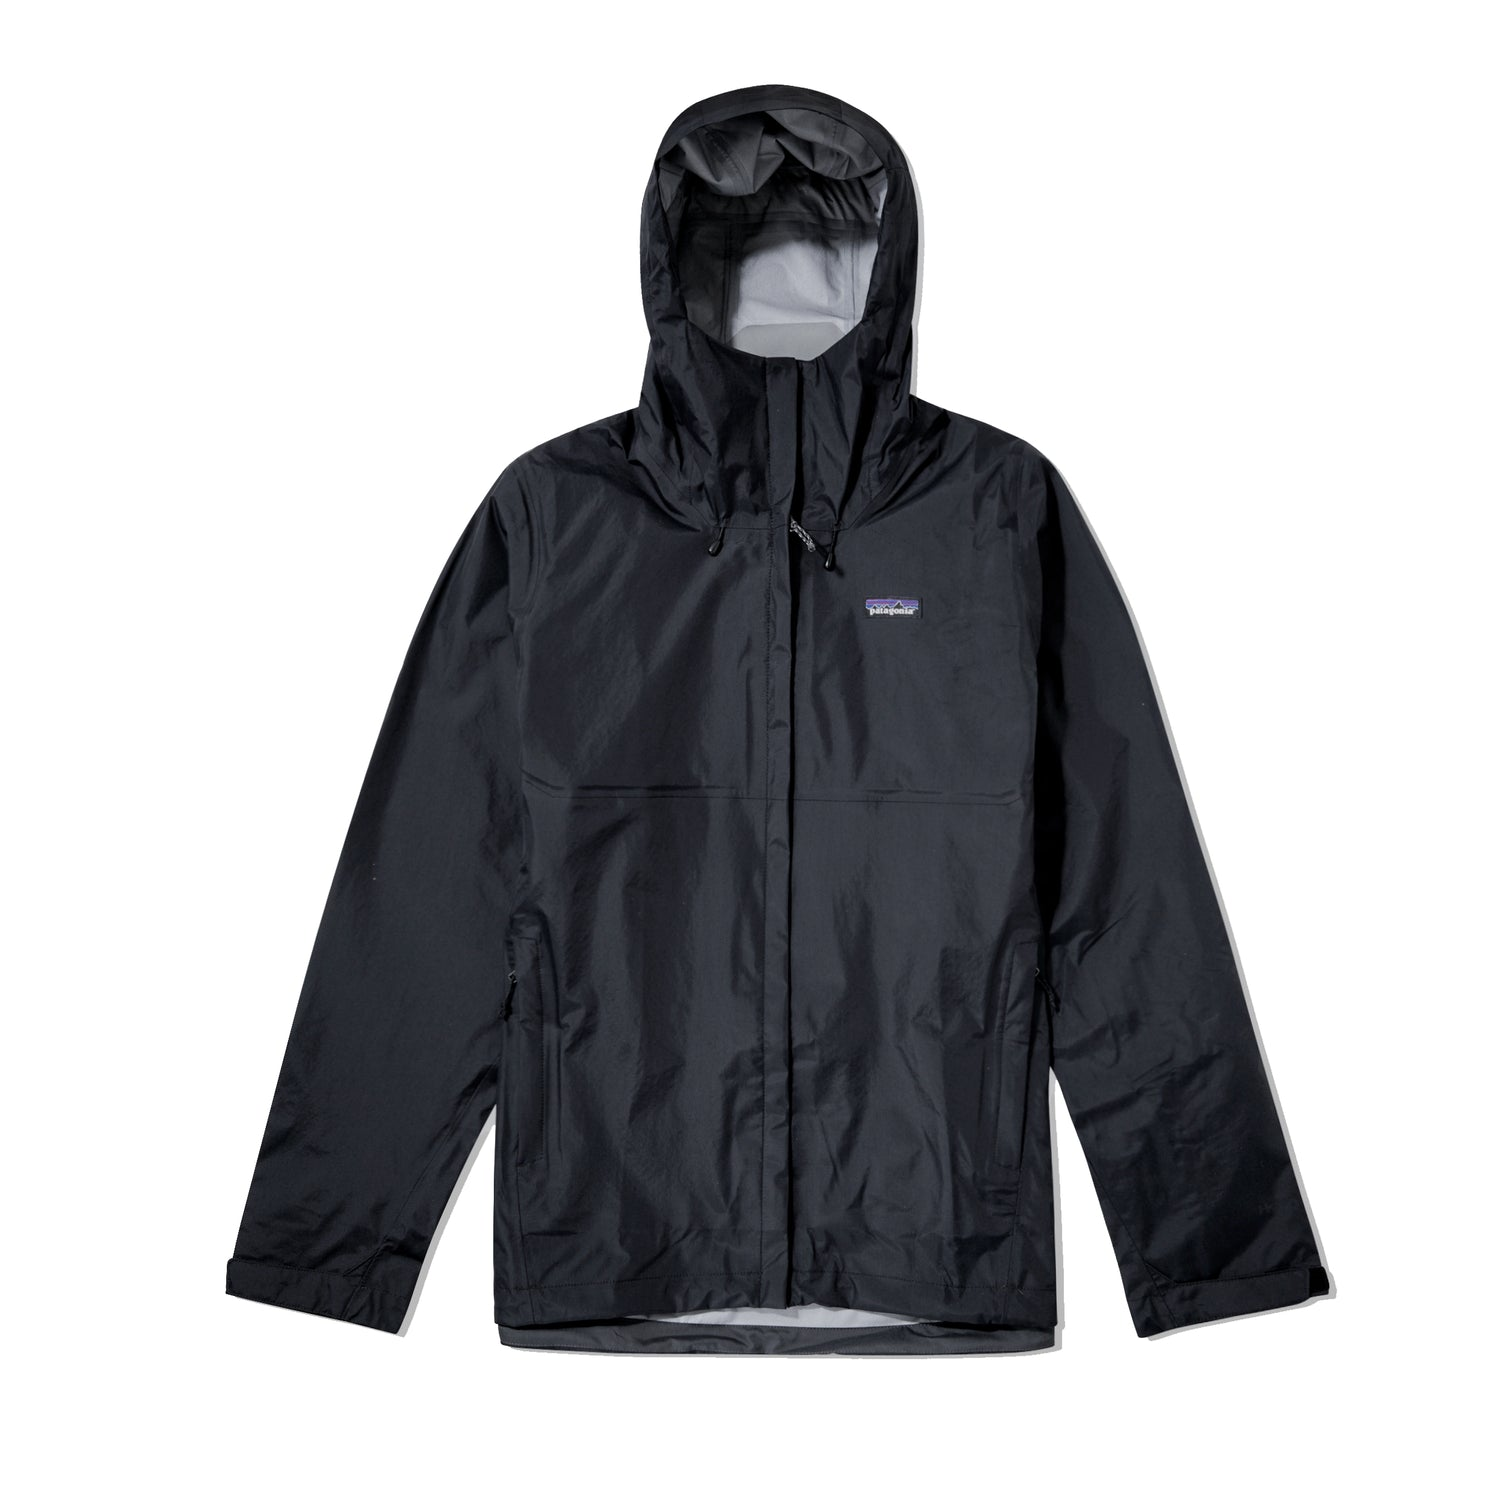 Torrentshell 3L Jacket, Black